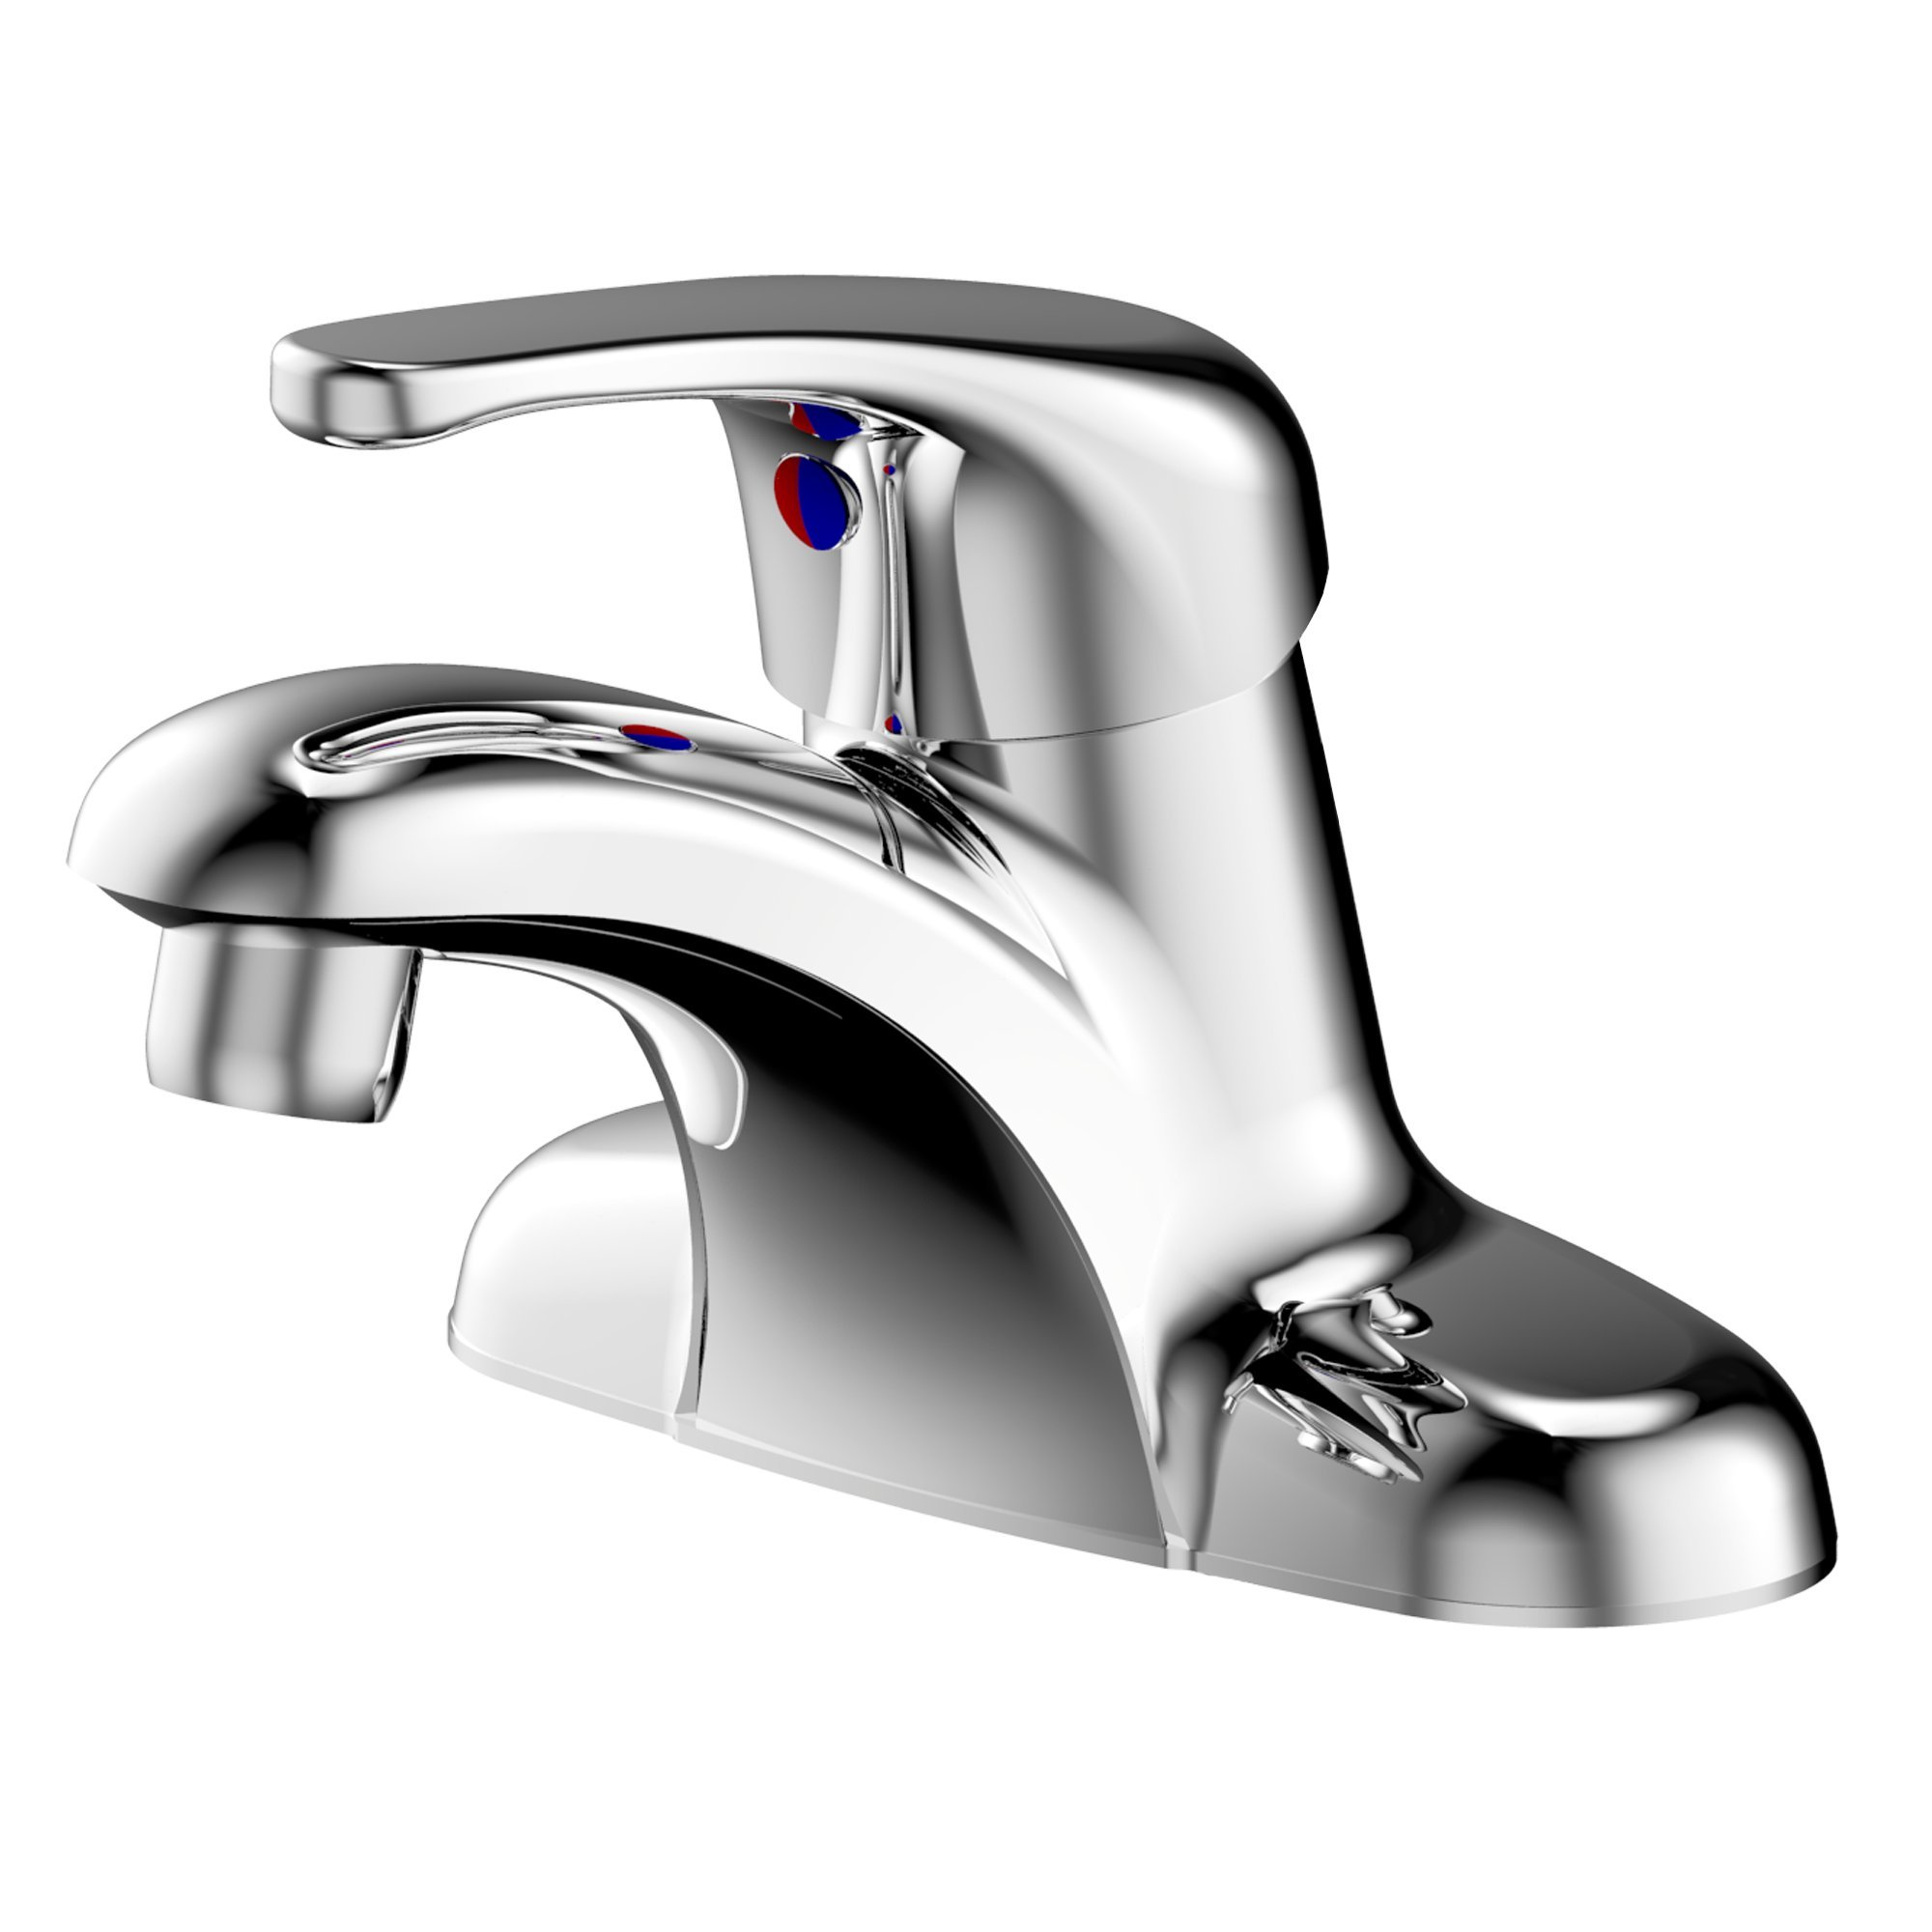 ENZO RODI Bathroom Faucet, Full-Metal Single-Handle 4 inch Centerset Bathroom Sink Faucet, without Drain Assembly, Chrome, ERF1214255CP-10 by ENZO RODI